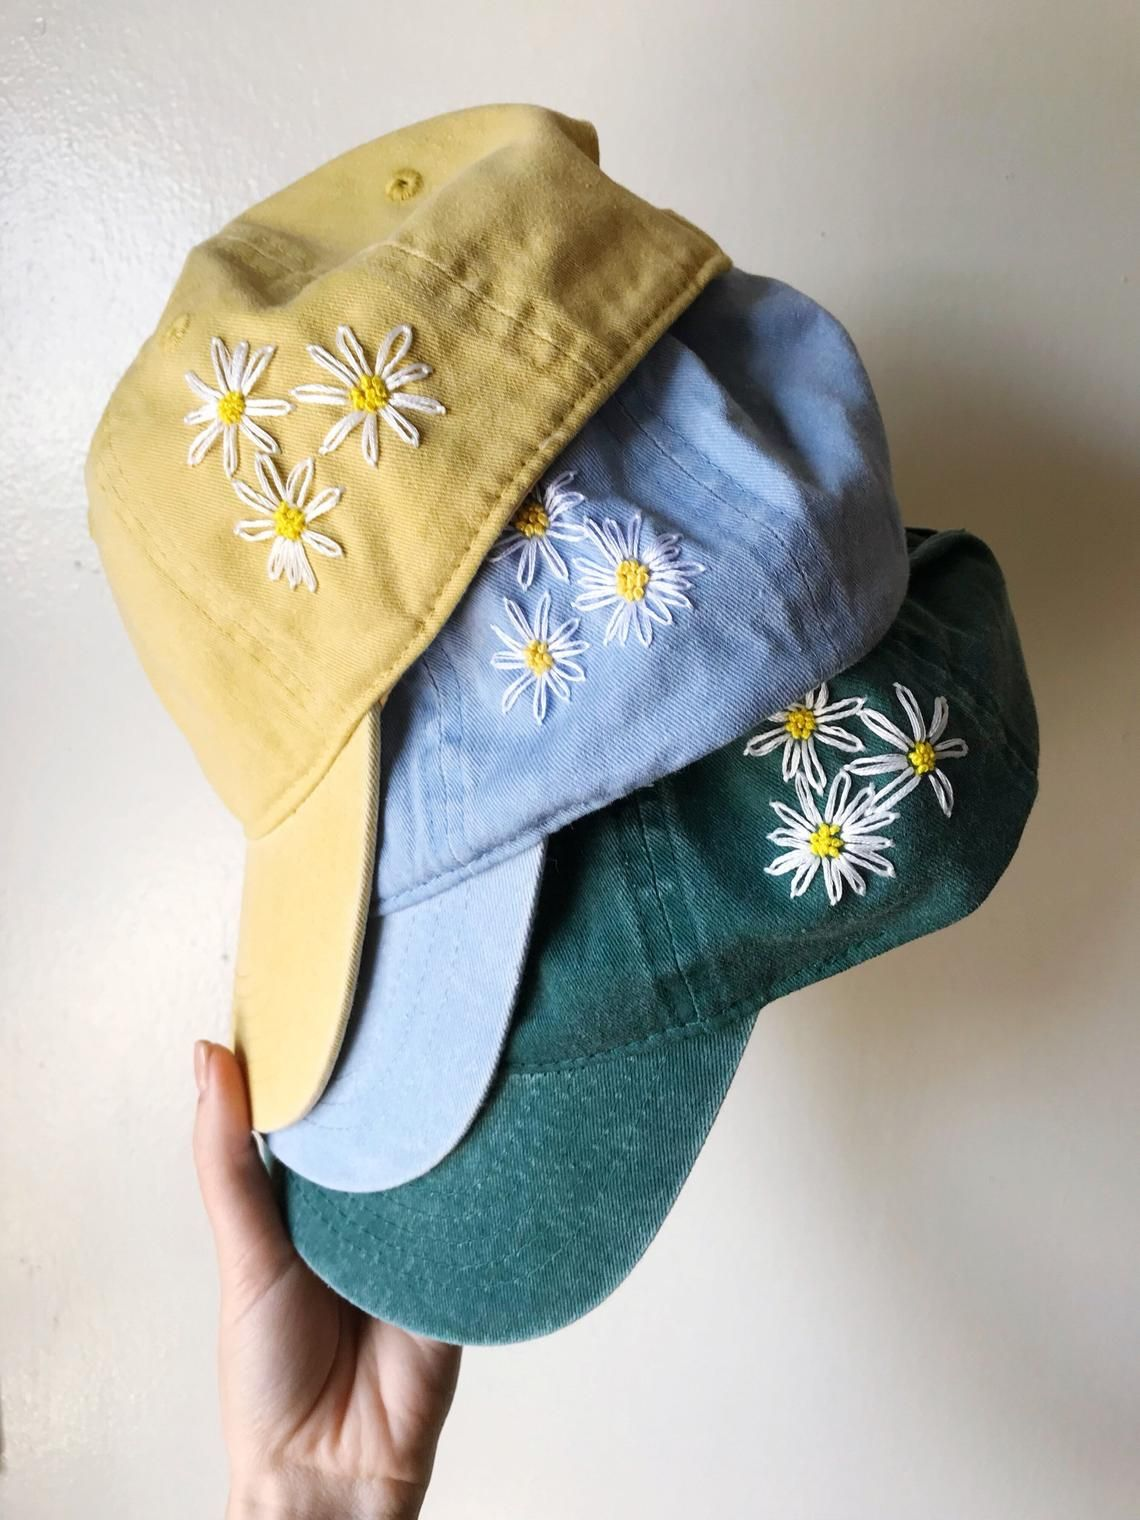 Floral Women S Baseball Cap Hand Embroidered Flowers Etsy Hand Embroidered Flowers Womens Baseball Cap Hand Embroidered